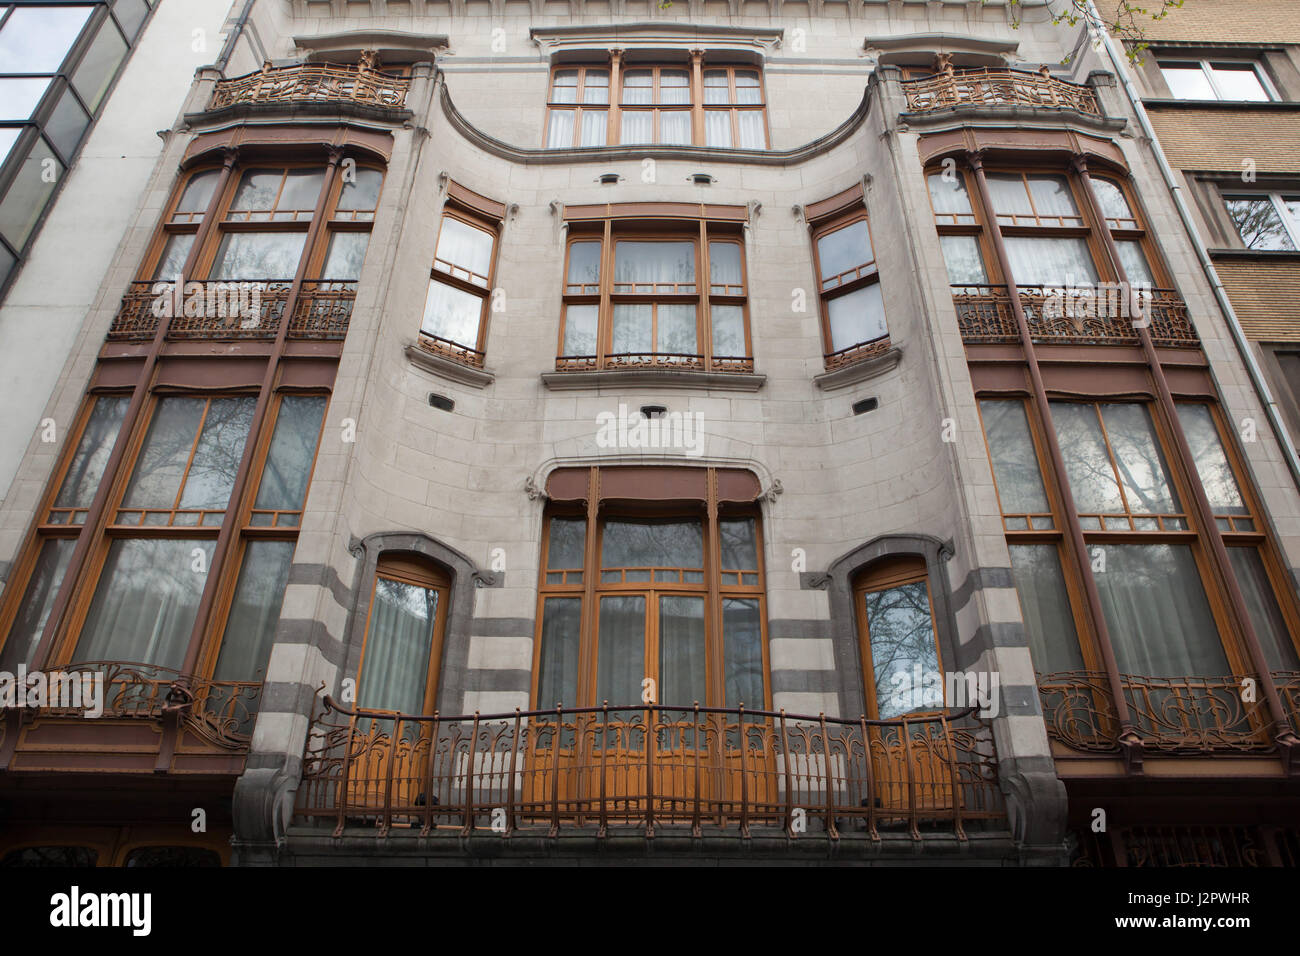 Hotel Solvay in Brussels Belgium The townhouse